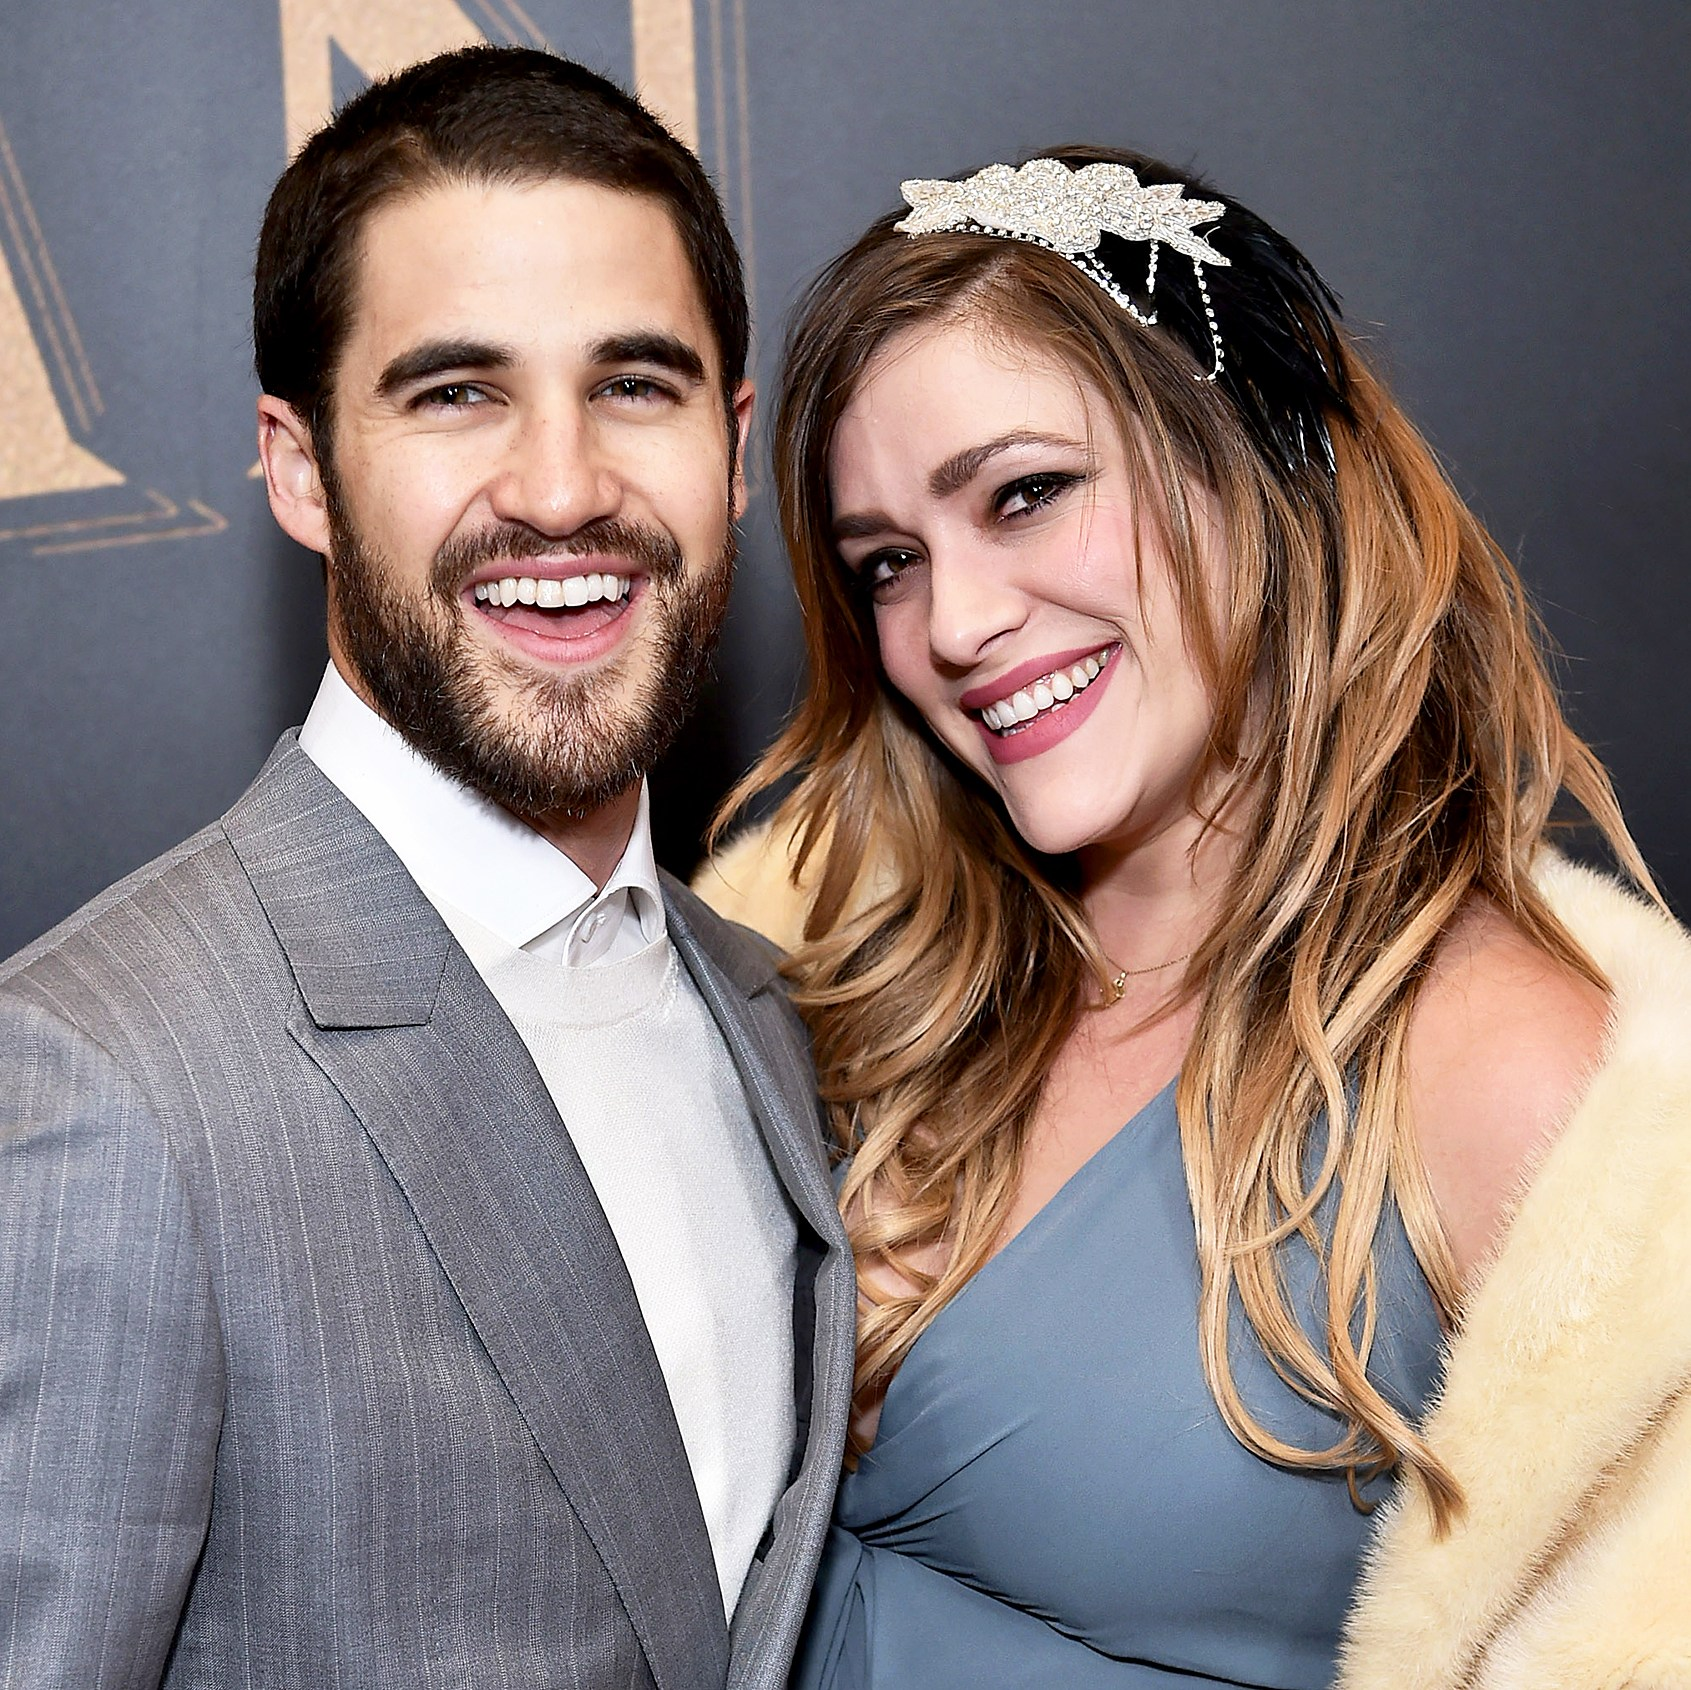 Darren Criss and Mia Swier attend 'The Greatest Showman' World 2017 Premiere aboard the Queen Mary 2 at the Brooklyn Cruise Terminal in New York City.